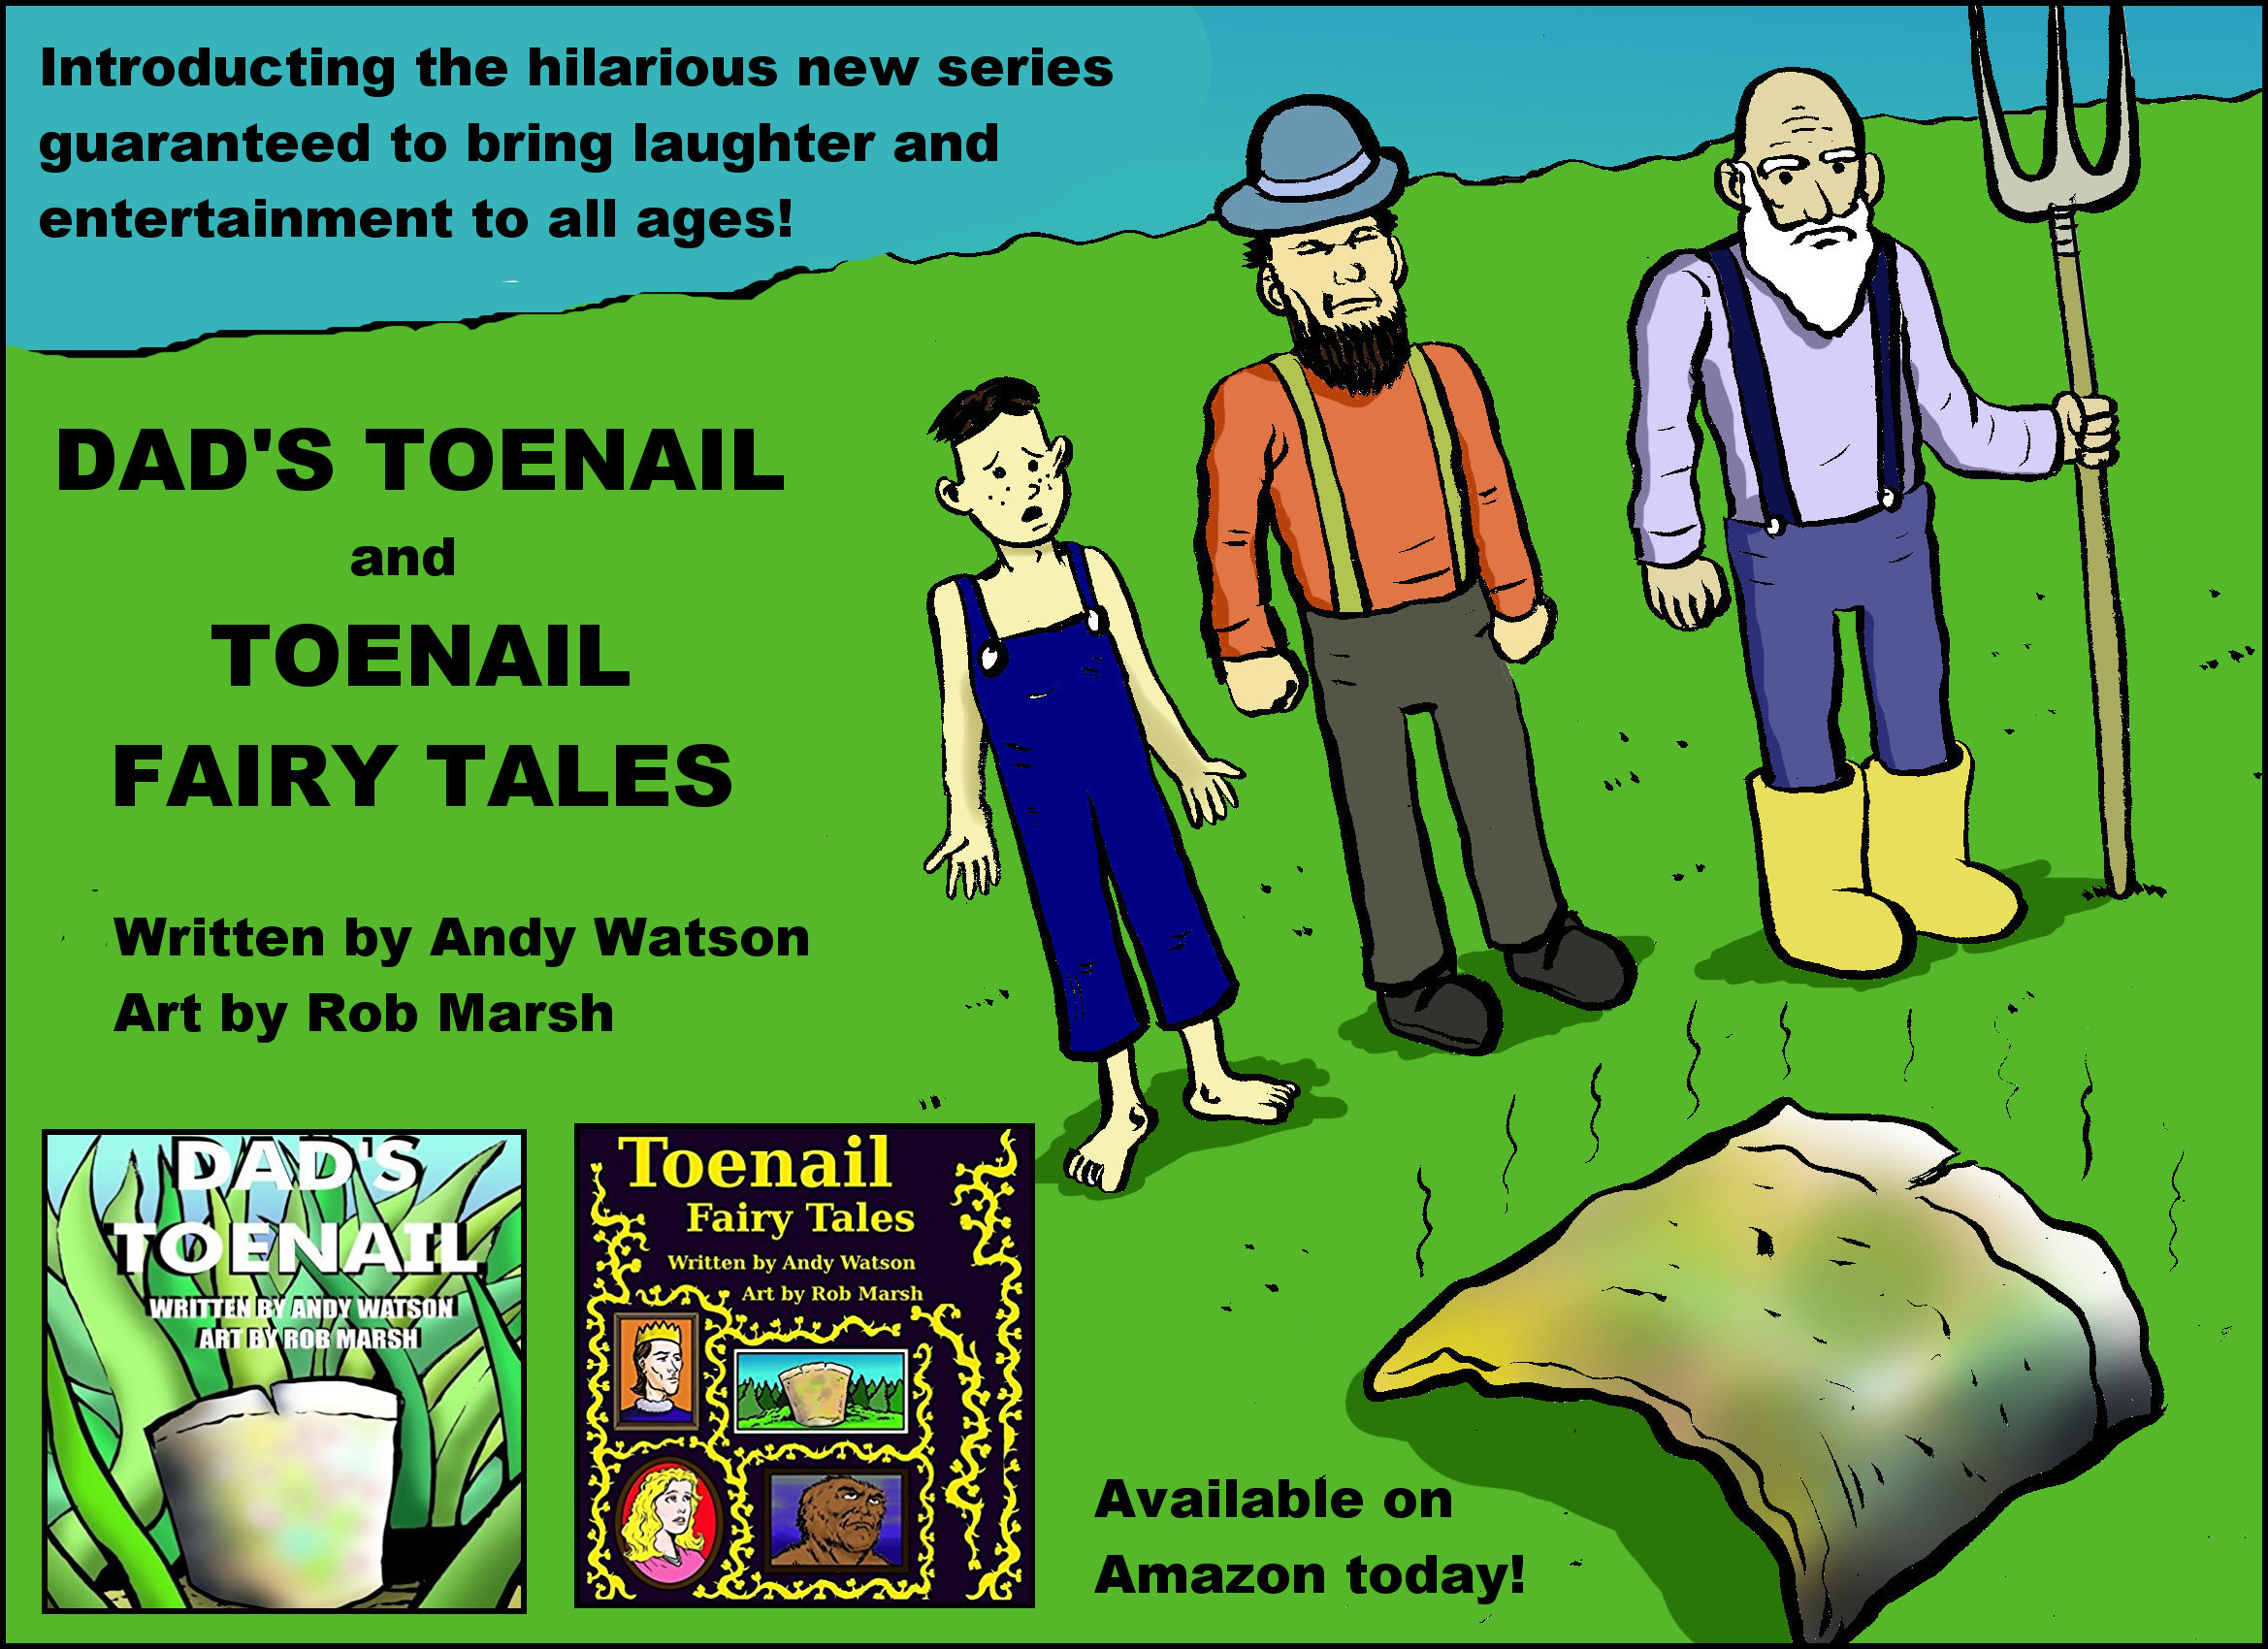 Dad's toenail is a silly children's book that I illustrated. It was written by my friend Andy Watson. It tells a goofy story of a Dad who loses a toenail, and how the family devises strange and creative ways to put that detached toenail to good use